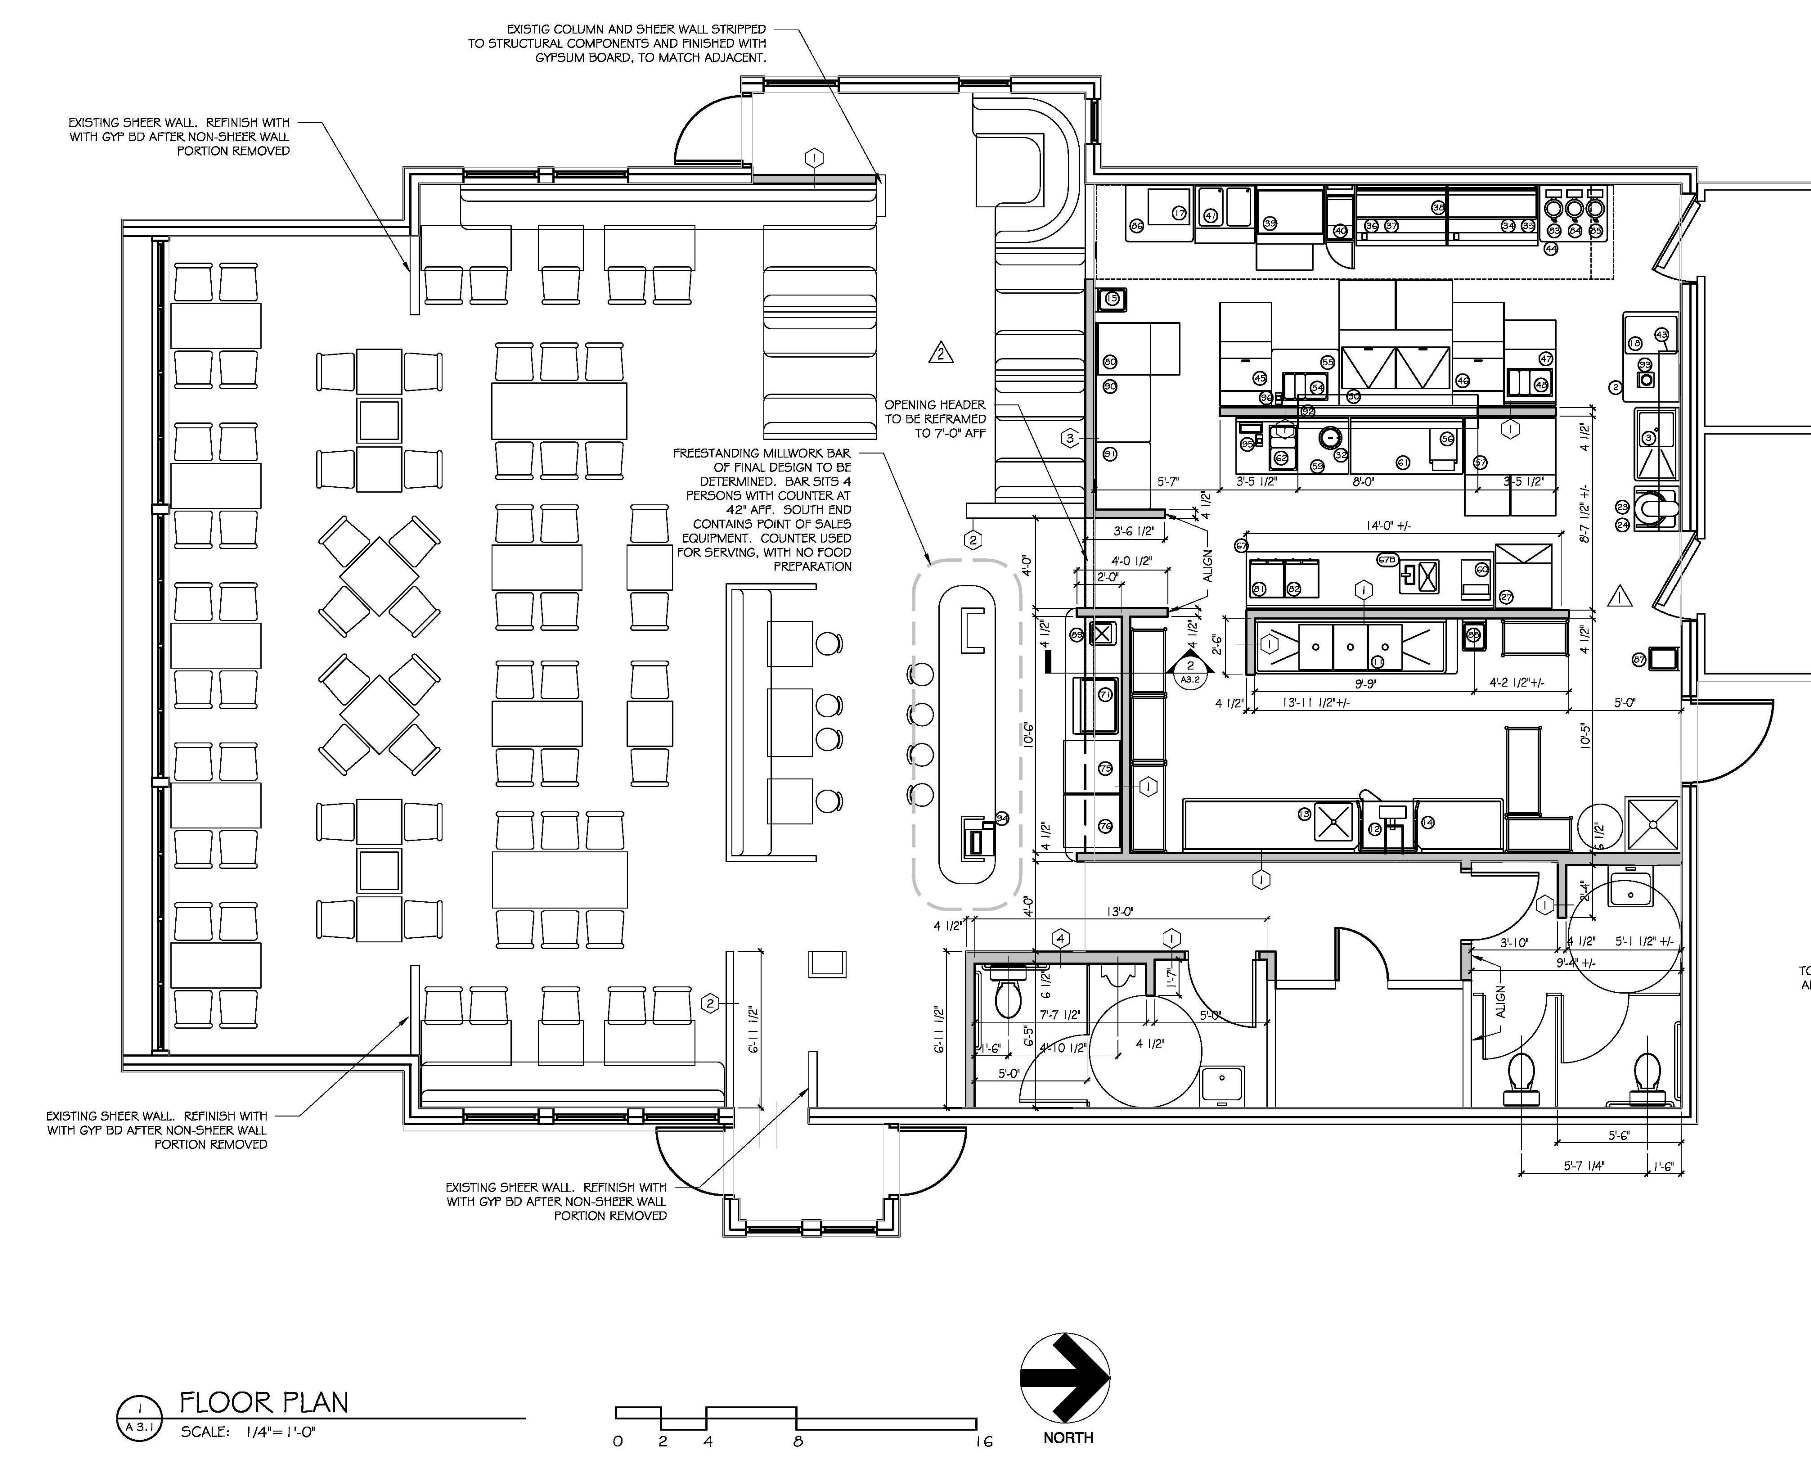 restaurant-kitchen-size-best-of-restaurant-kitchen-layout-dimensions ...